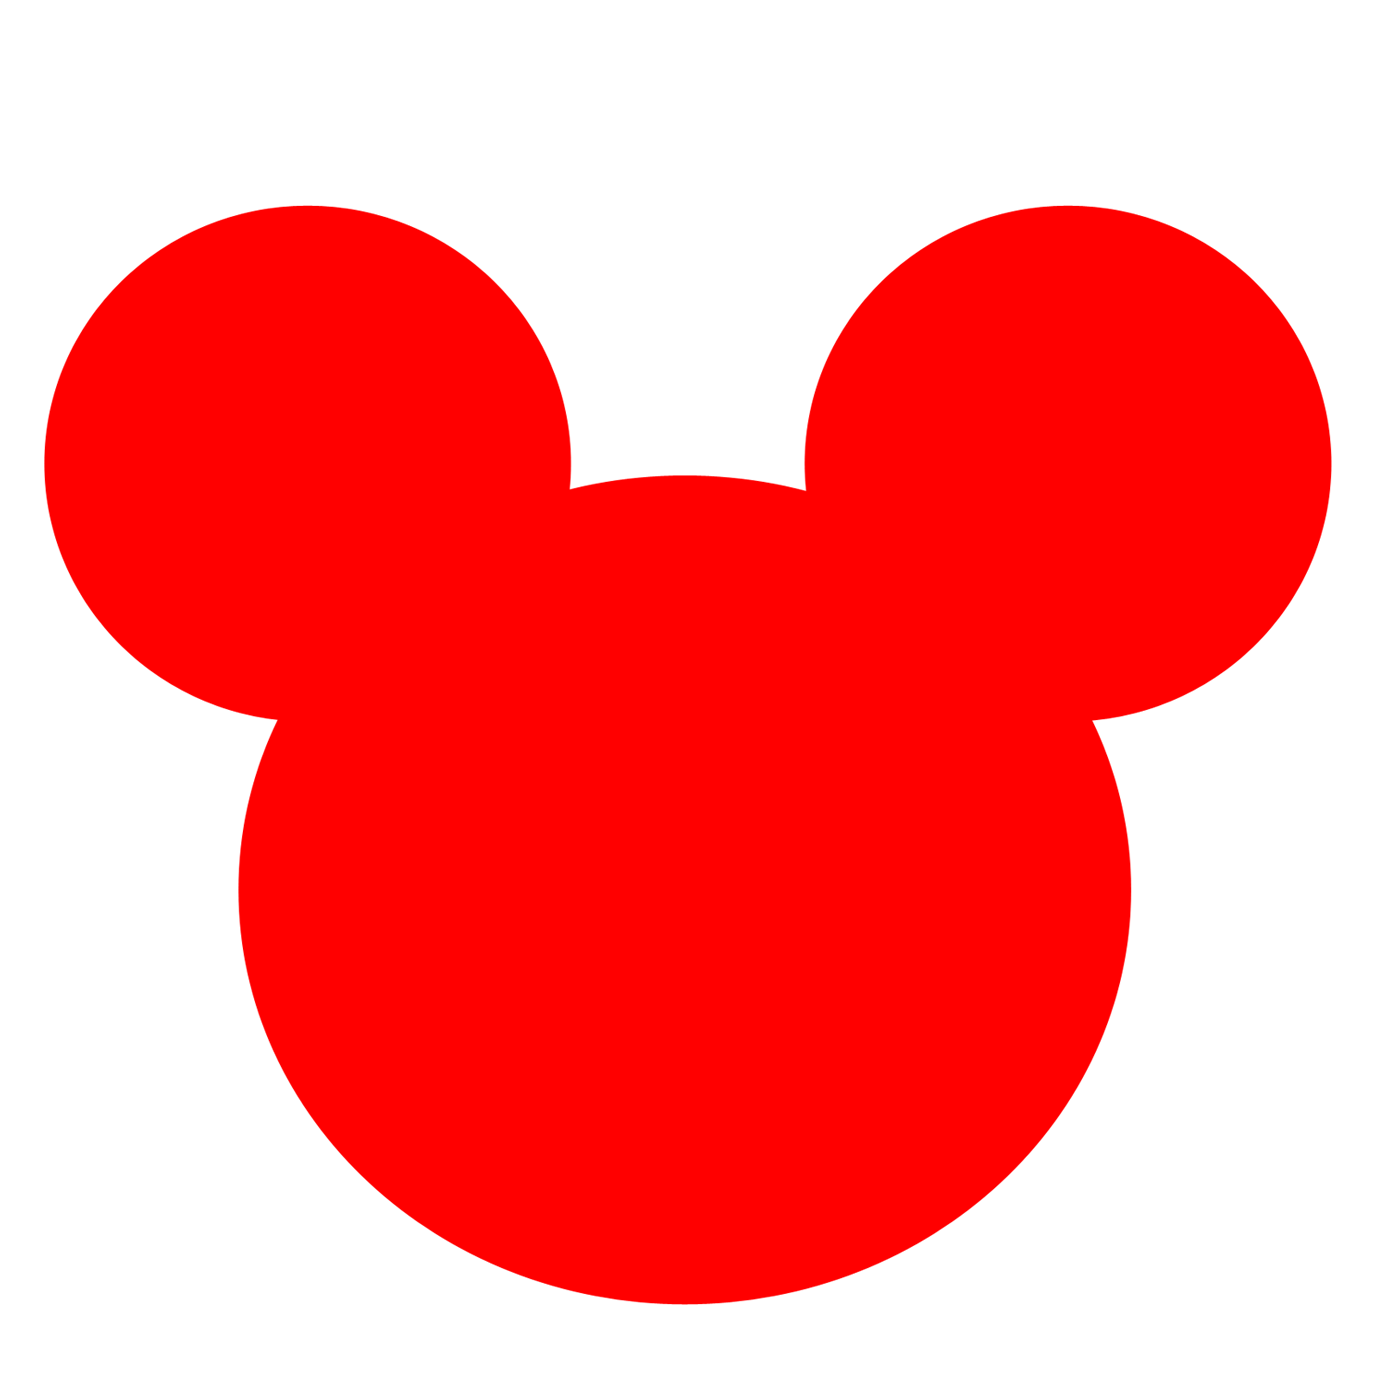 Mickey mouse clipart face.